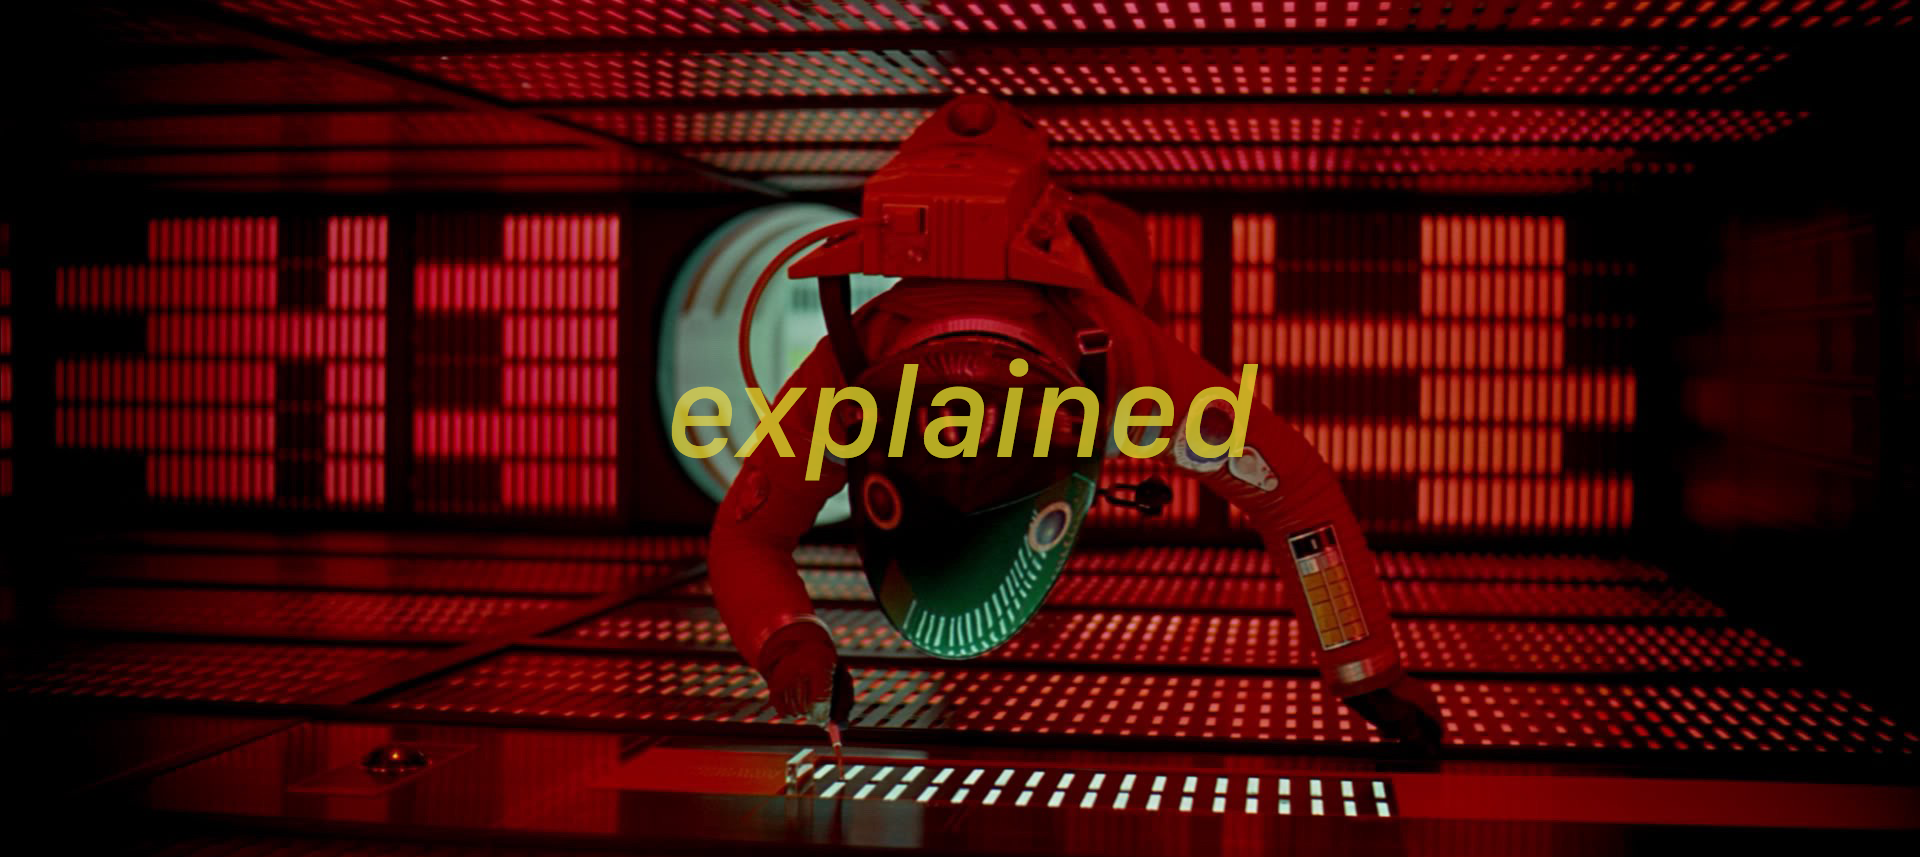 2001 a space odyssey explained